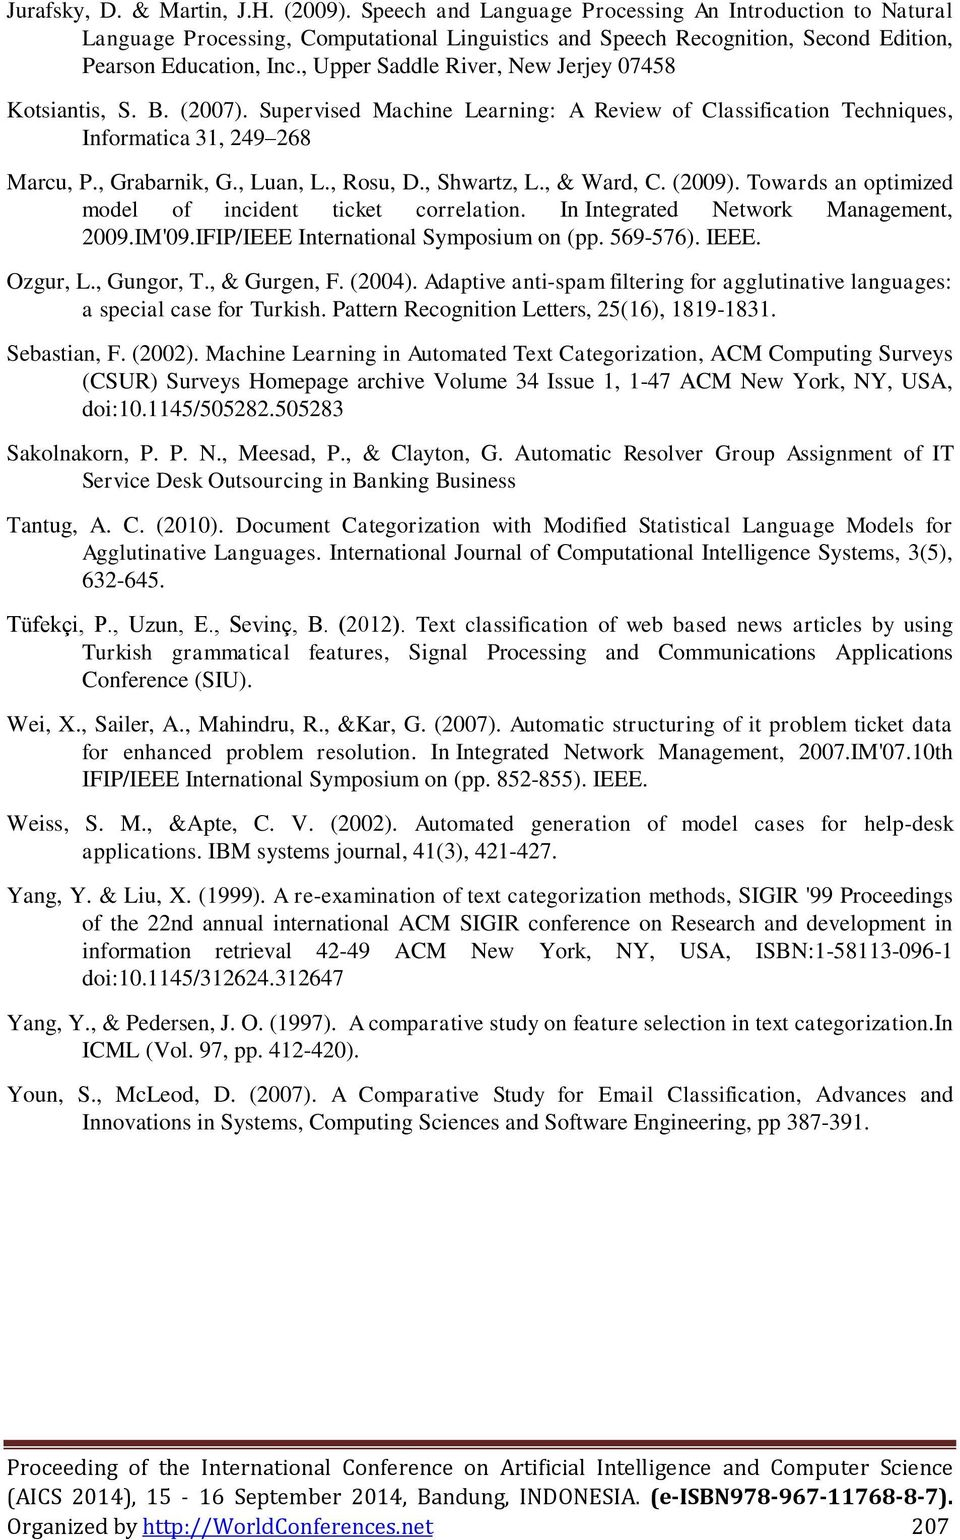 , Upper Saddle River, New Jerjey 07458 Kotsiantis, S. B. (2007). Supervised Machine Learning: A Review of Classification Techniques, Informatica 31, 249 268 Marcu, P., Grabarnik, G., Luan, L.